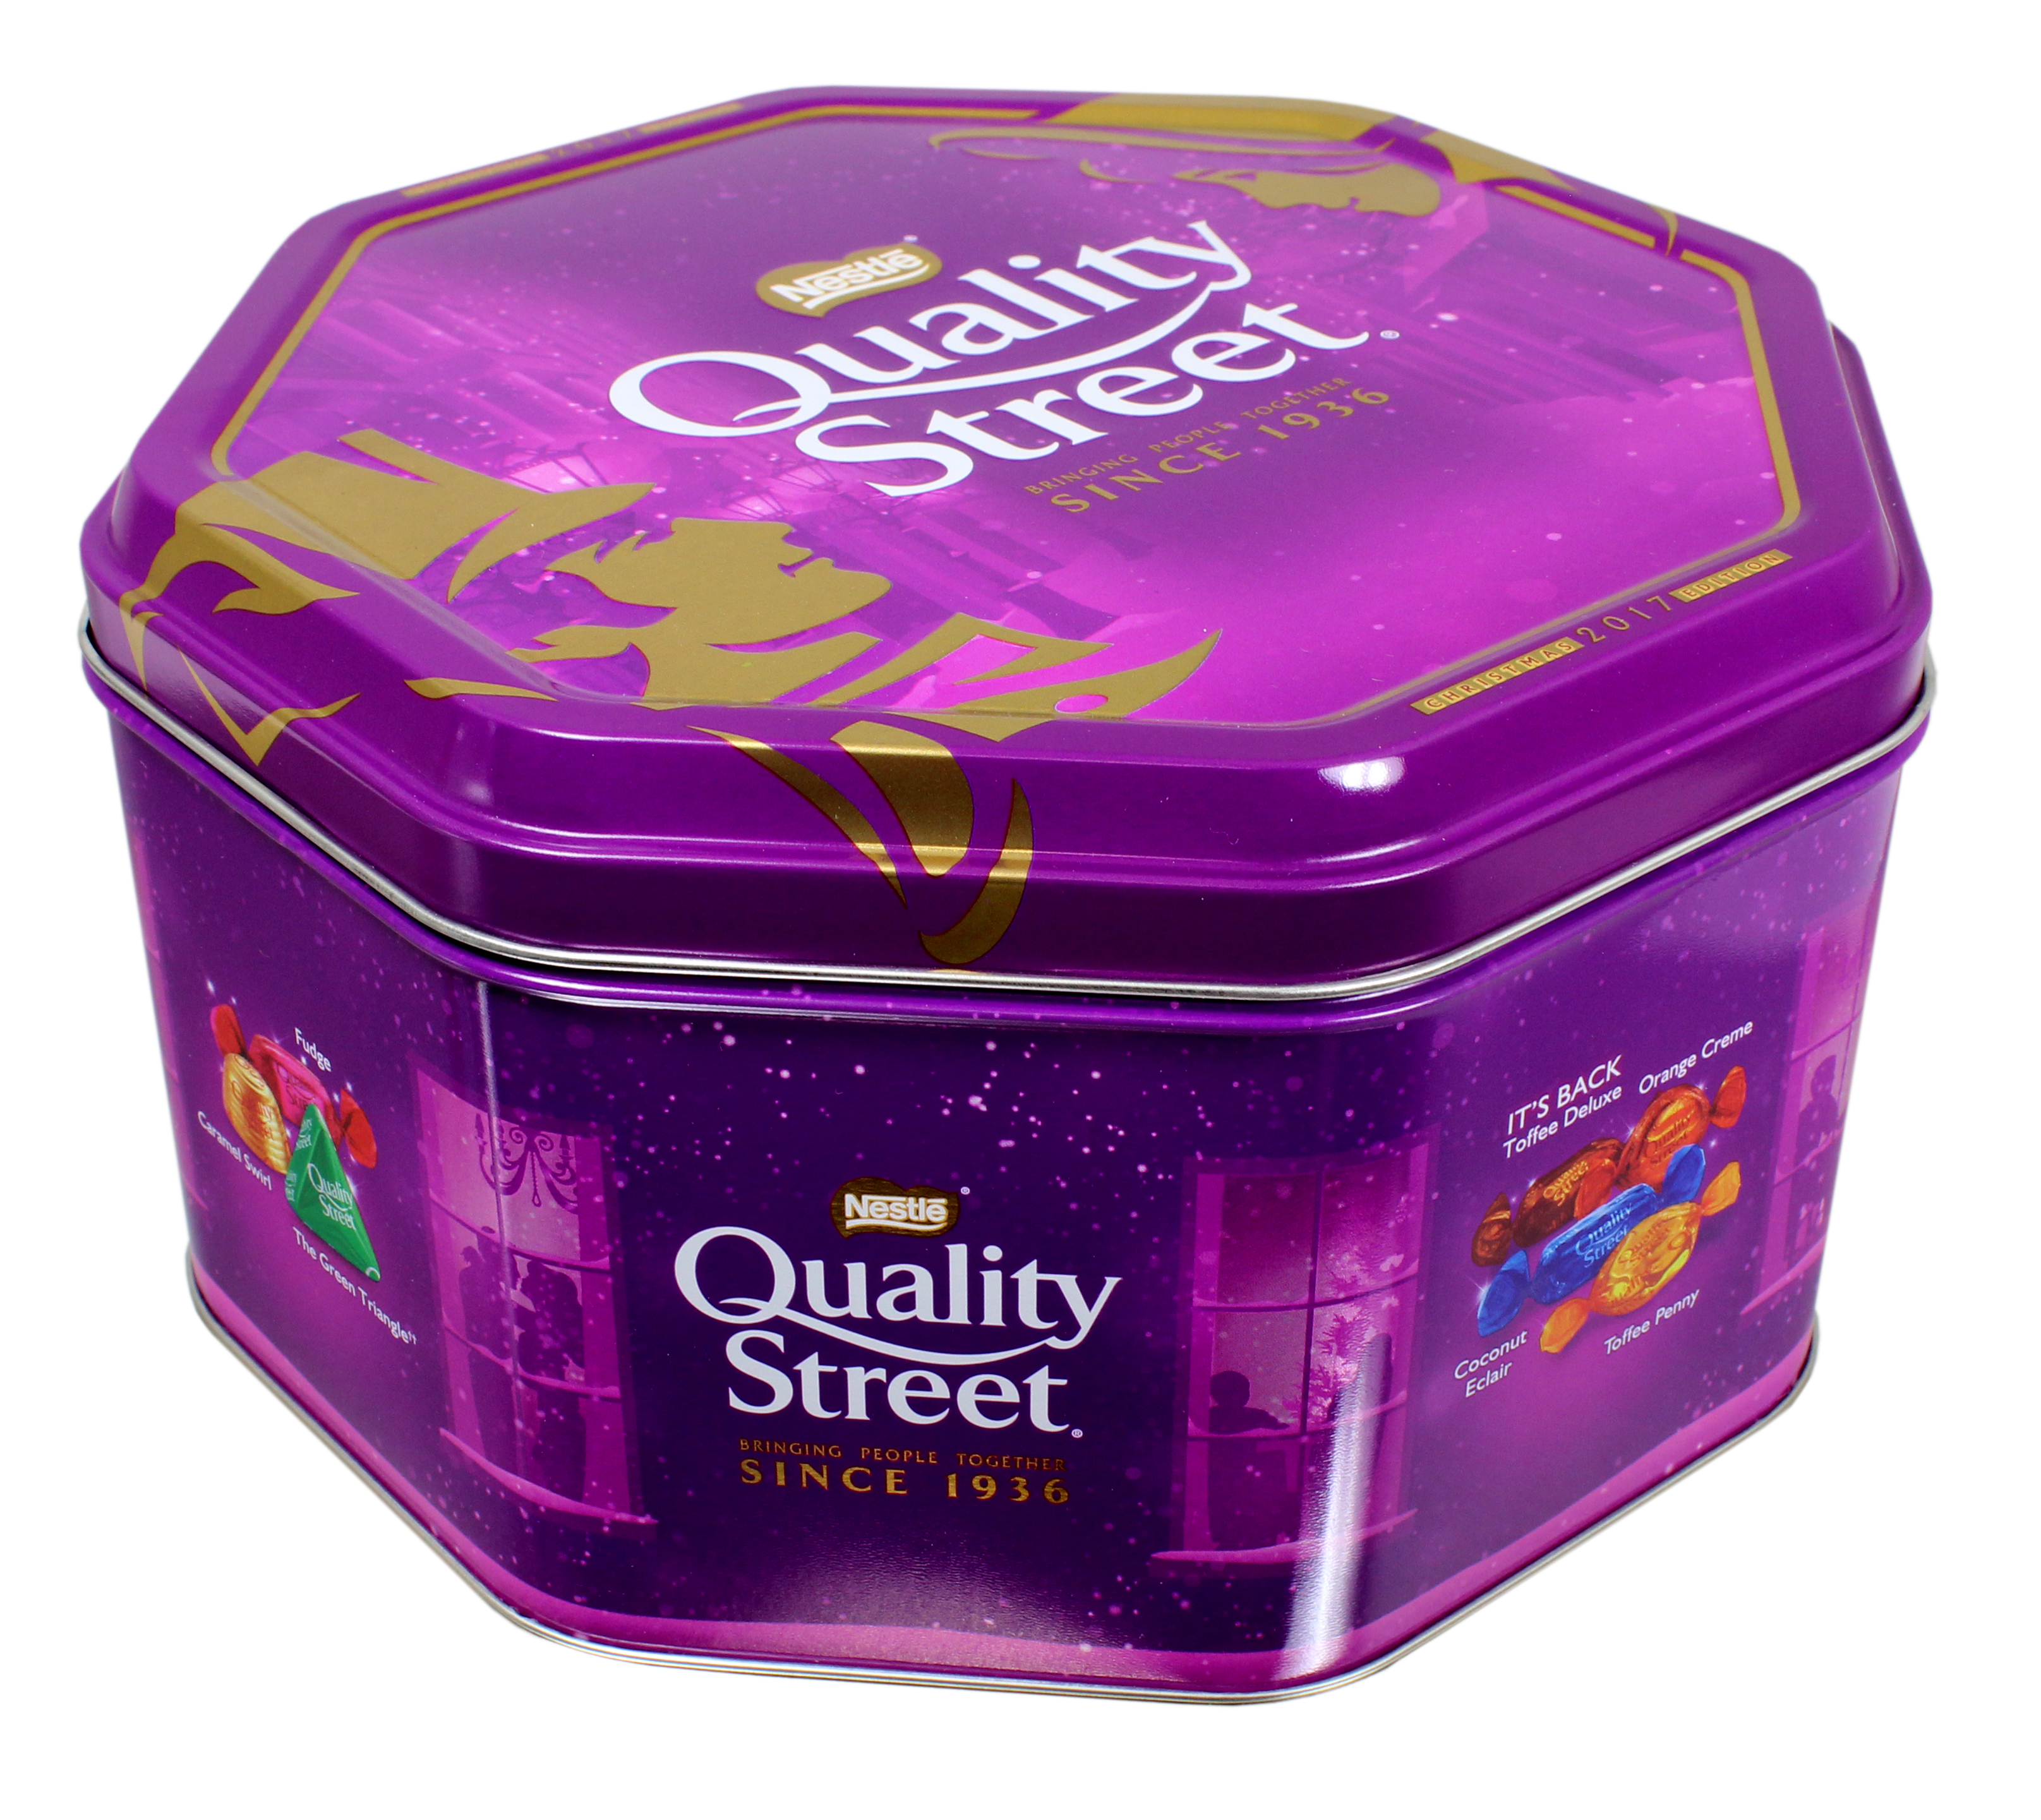 Nestle's Quality Street tinned toffees